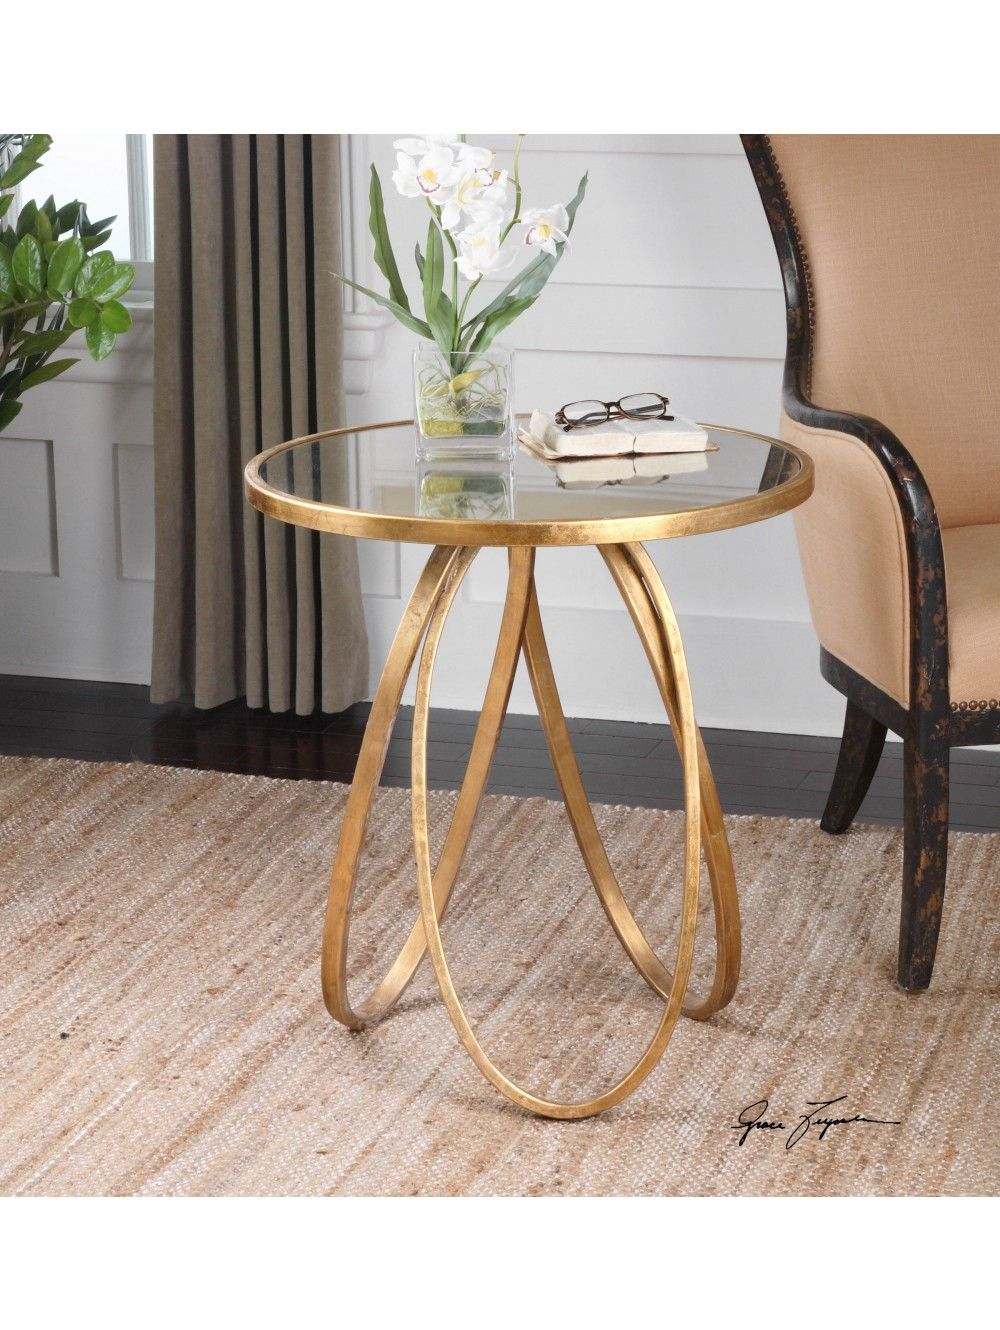 bernard accent table landgathome gold end diy most comfortable drum throne telephone chair small plant tiled garden and chairs mirrored tray for coffee blue oriental lamps ikea